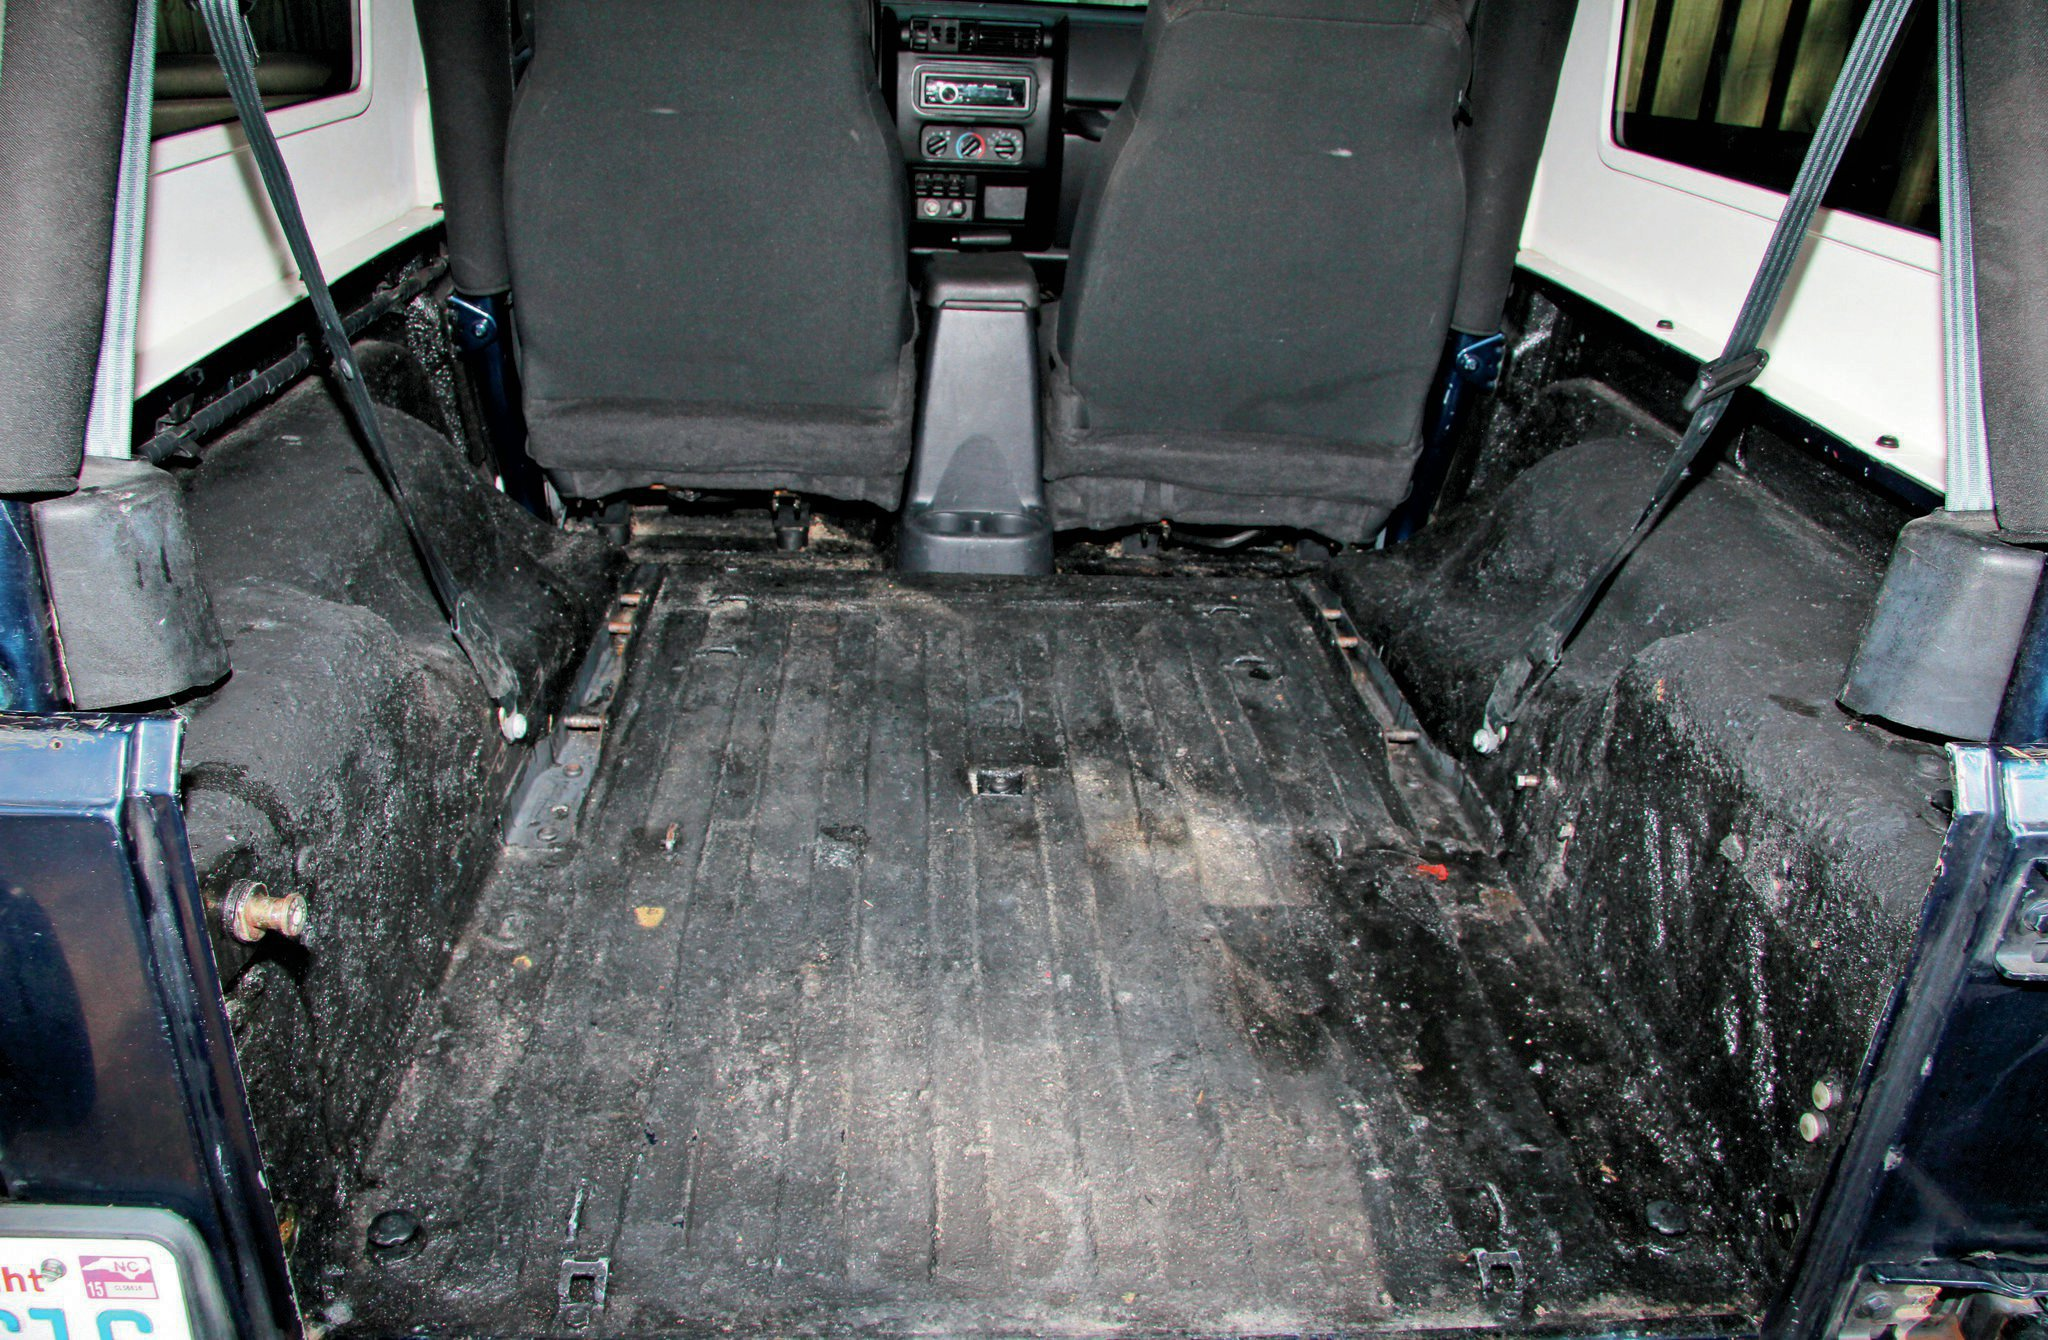 Our '04 Unlimited was fit with a DIY bed liner, which had seen better days. Using some Simple Green and a brush, we scrubbed and vacuumed the inside of the Jeep to prep for the new BedRug.